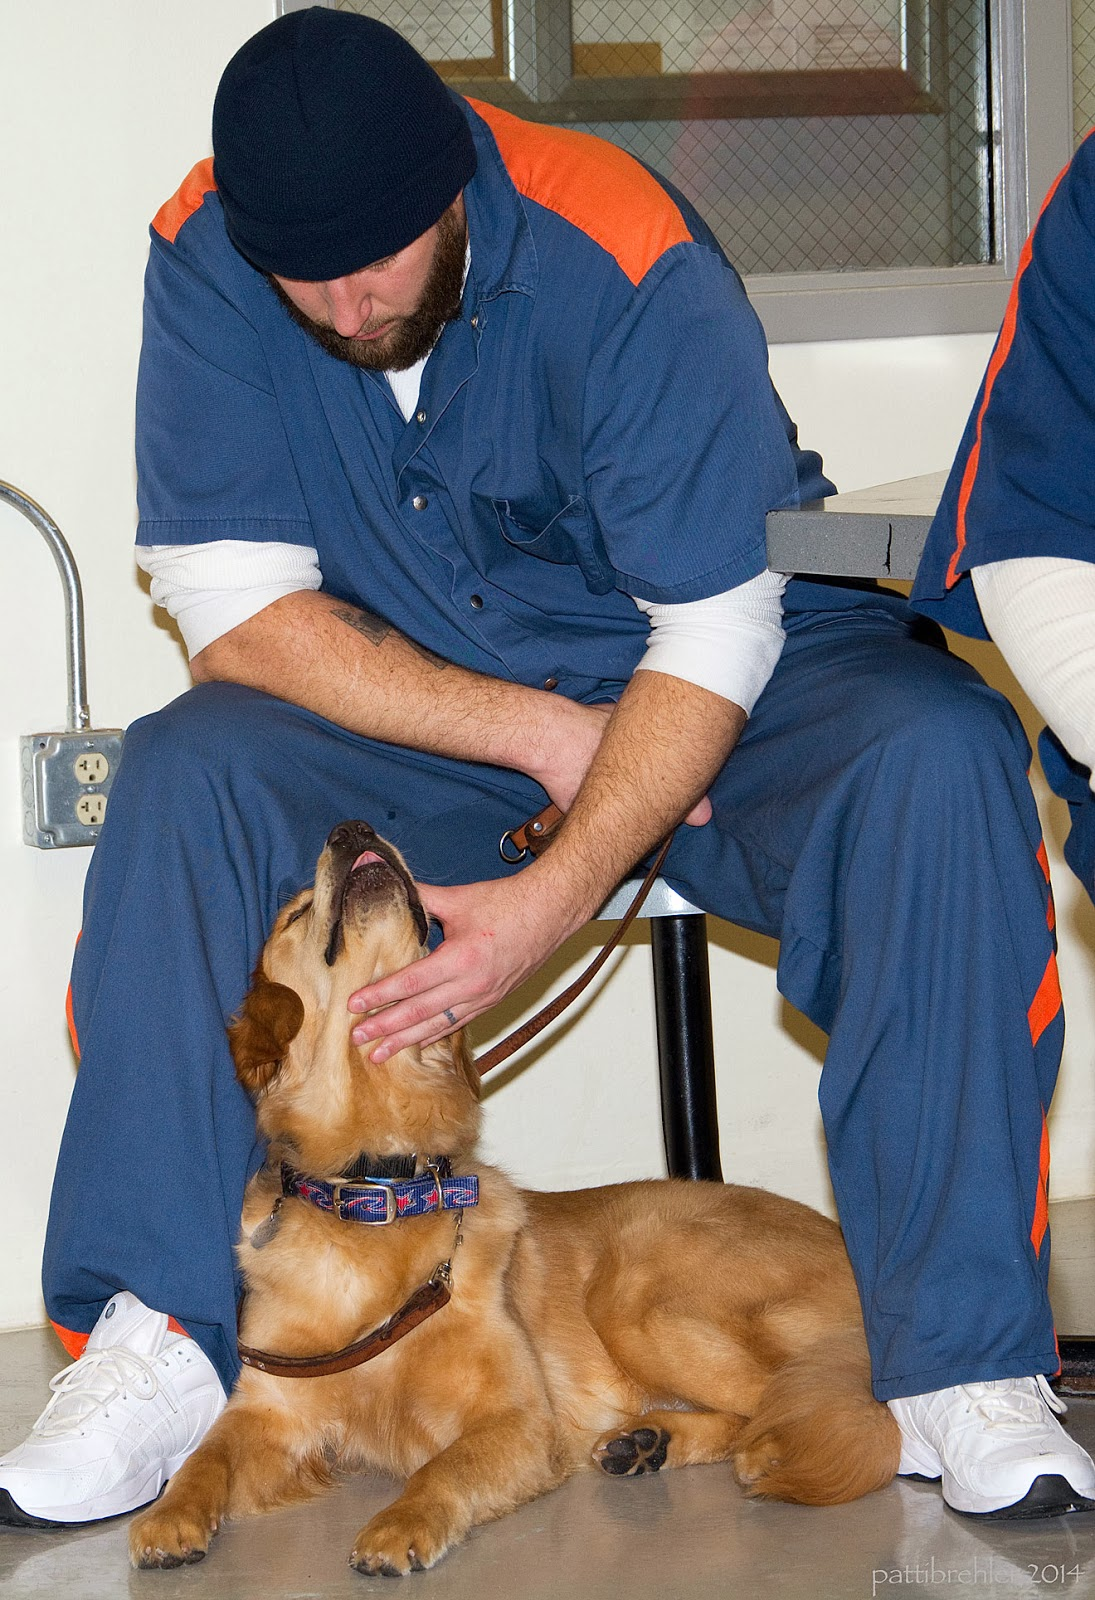 A man wearing a blue knit hat and blue shirt and pants with orange stripes is sitting on a chair looking down at a golden retriver laying on the floor under the chair and between the man's legs. The man is petting the dog under its chin with his left hand. The dog is looking up at the man.